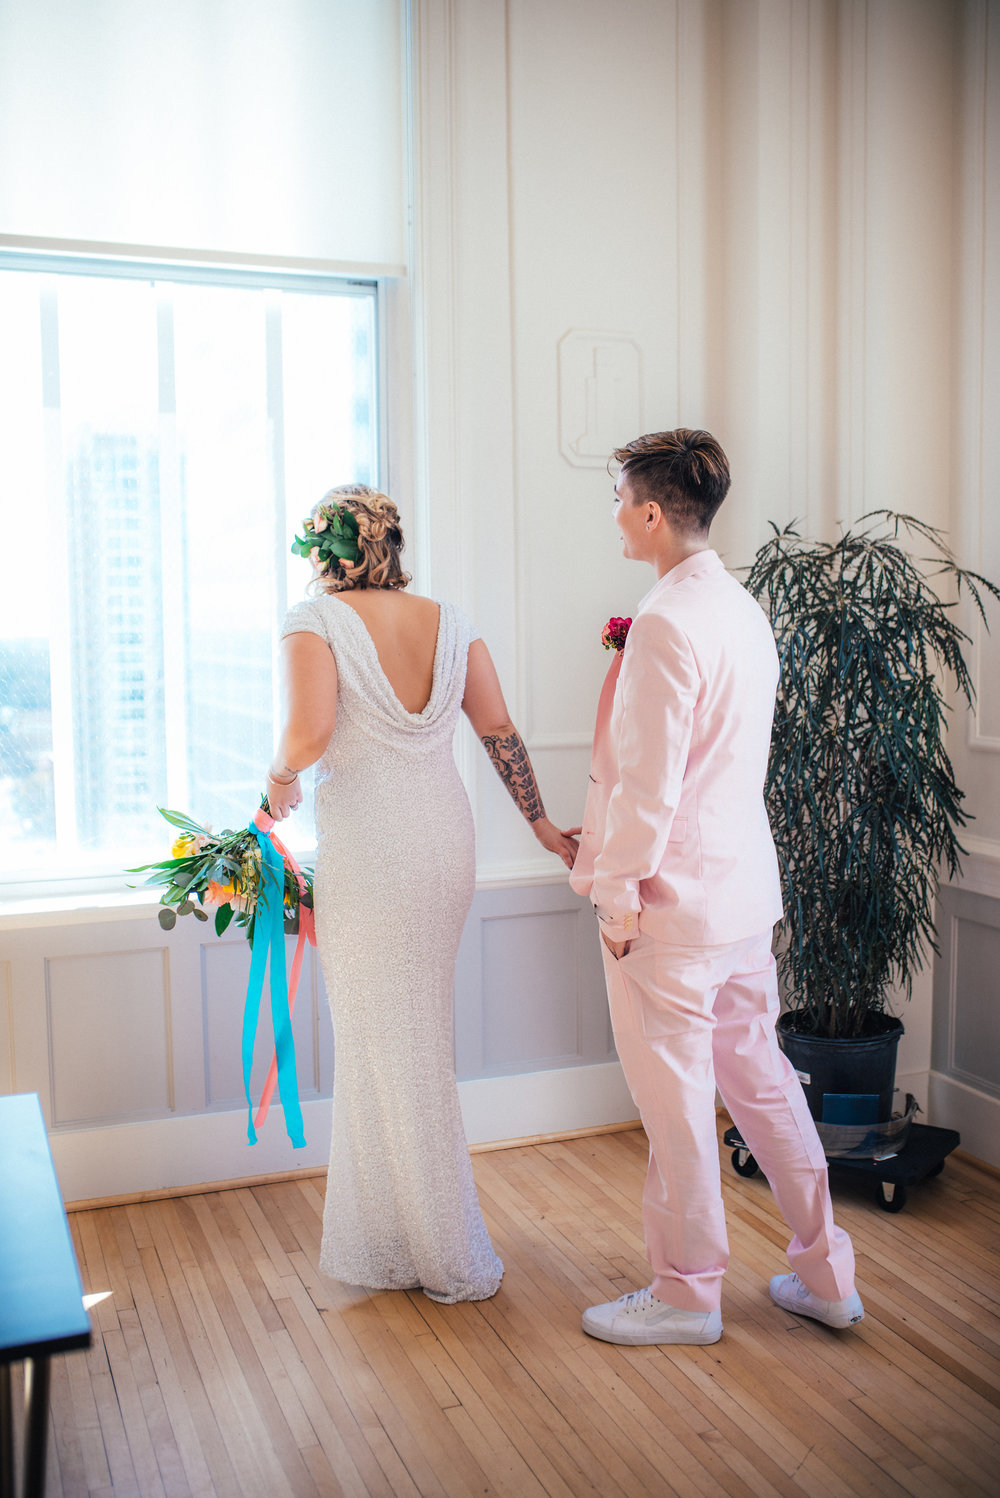 North Carolina LGBT Wedding Photographer - Palm Springs Wedding - Raleigh Wedding Photographer